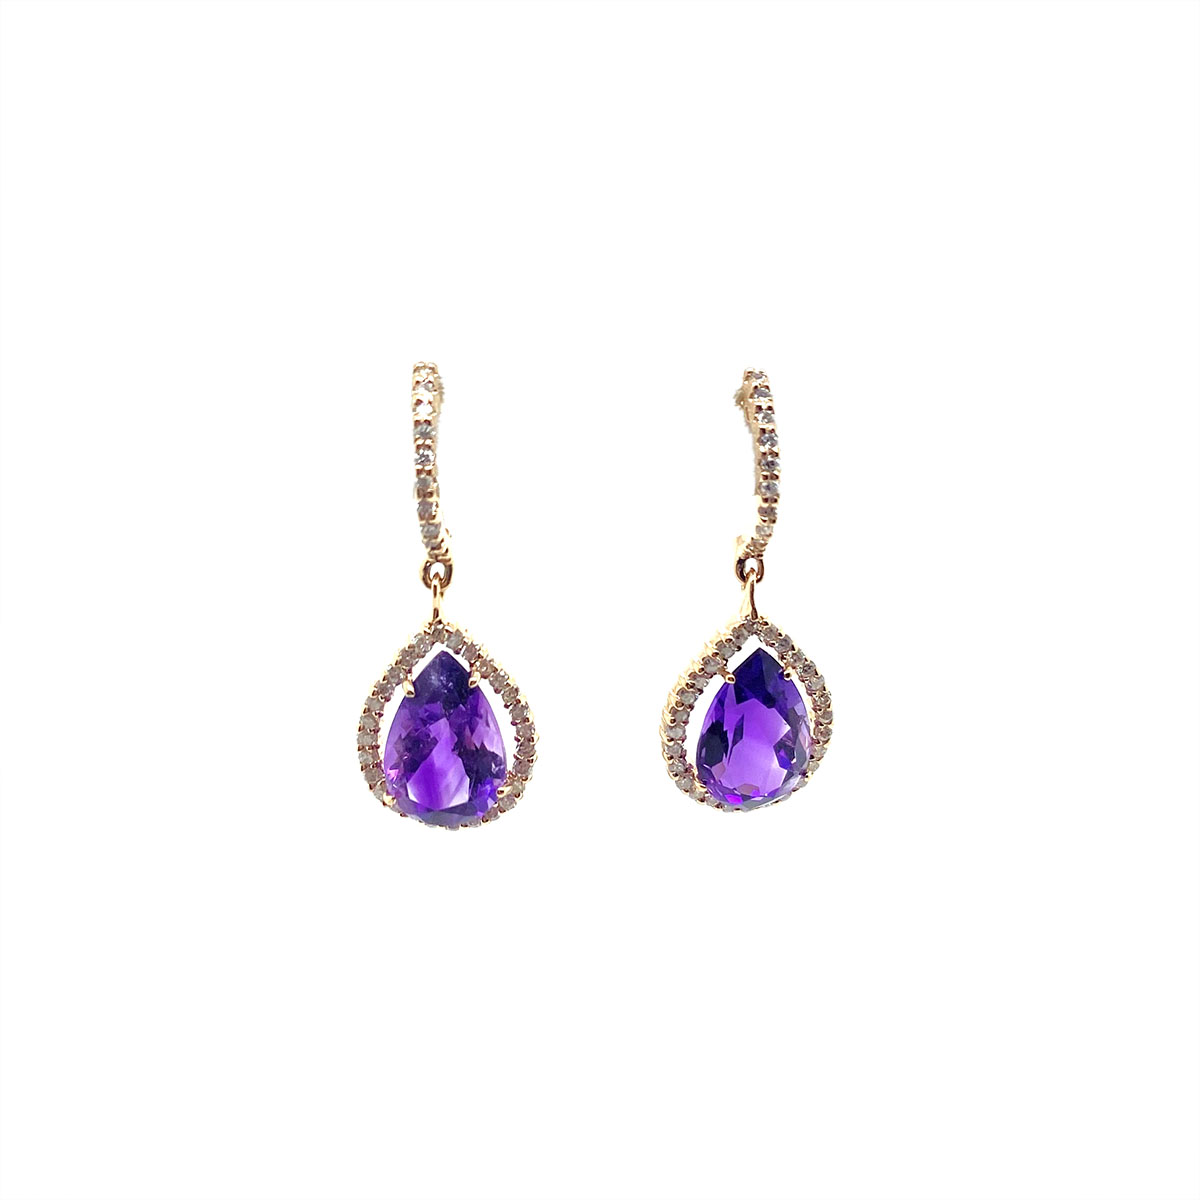 14 Karat Rose Gold Pear Shaped Amethyst and Diamond Huggie Earrings